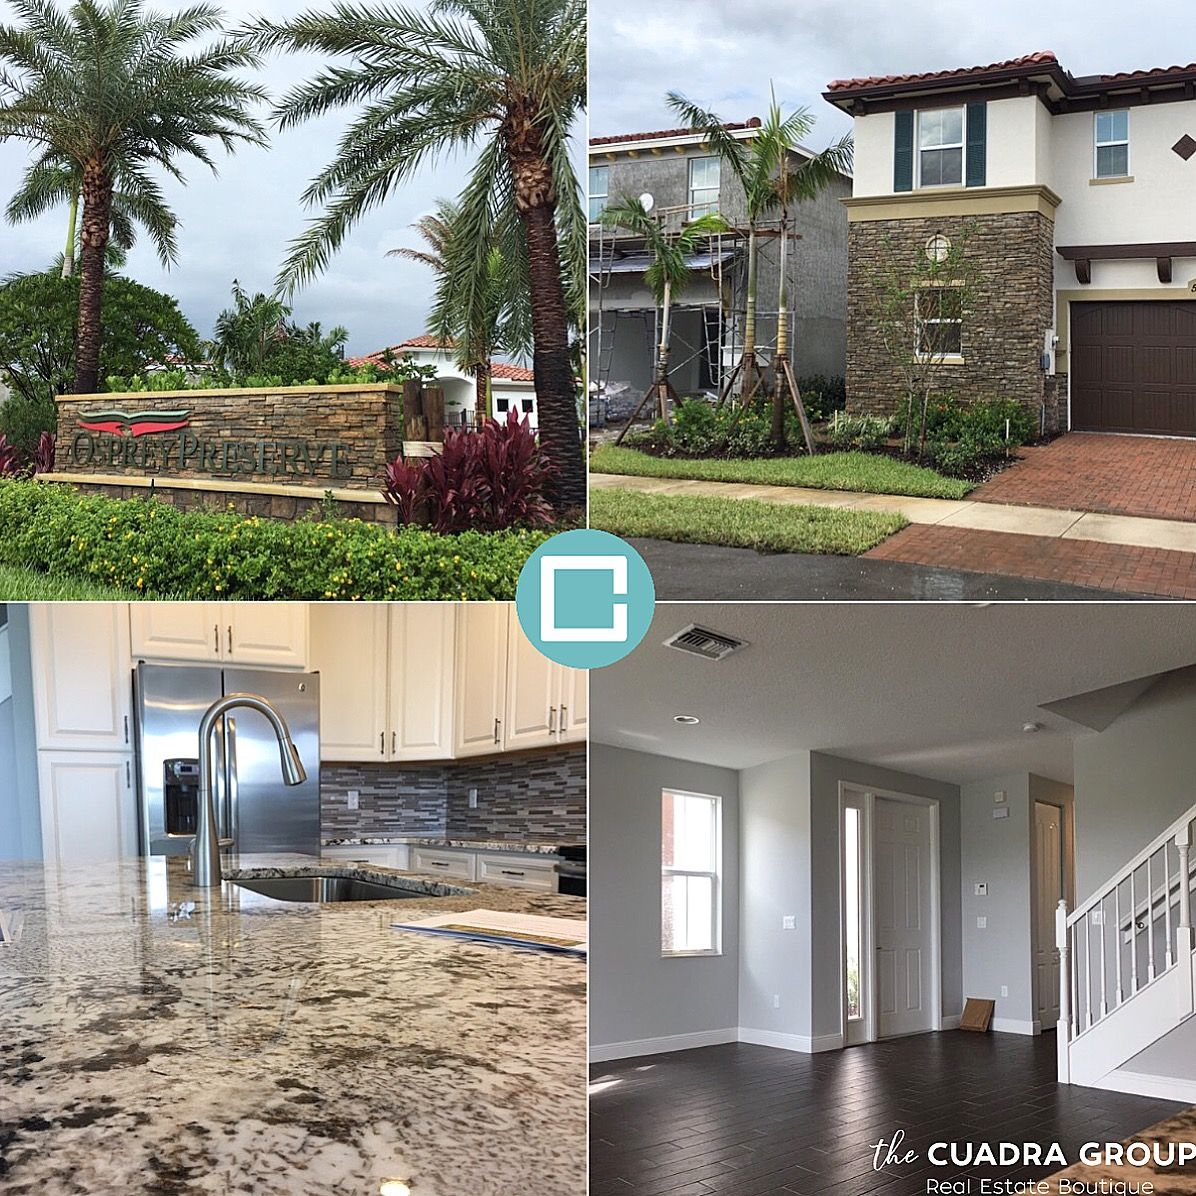 T H E C U A D R A G R O U P In Davie Today Showing This Brand New Development To Our Amazing Client Who Just Passed Miami Real Estate Real Estate Homeowner